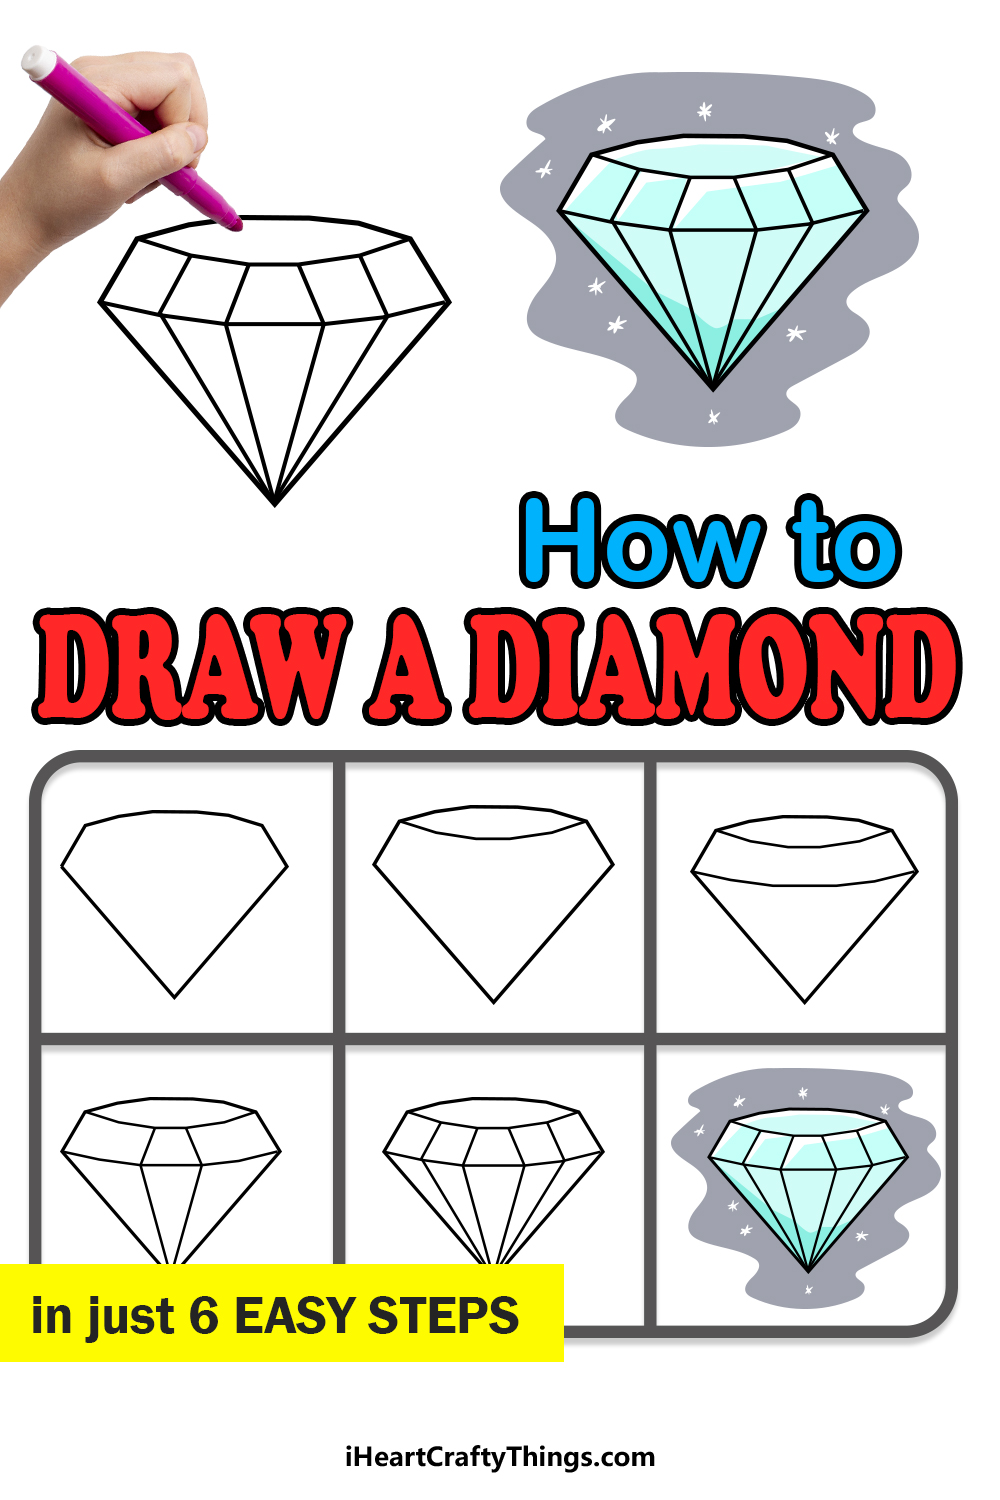 how to draw a diamond in 6 easy steps